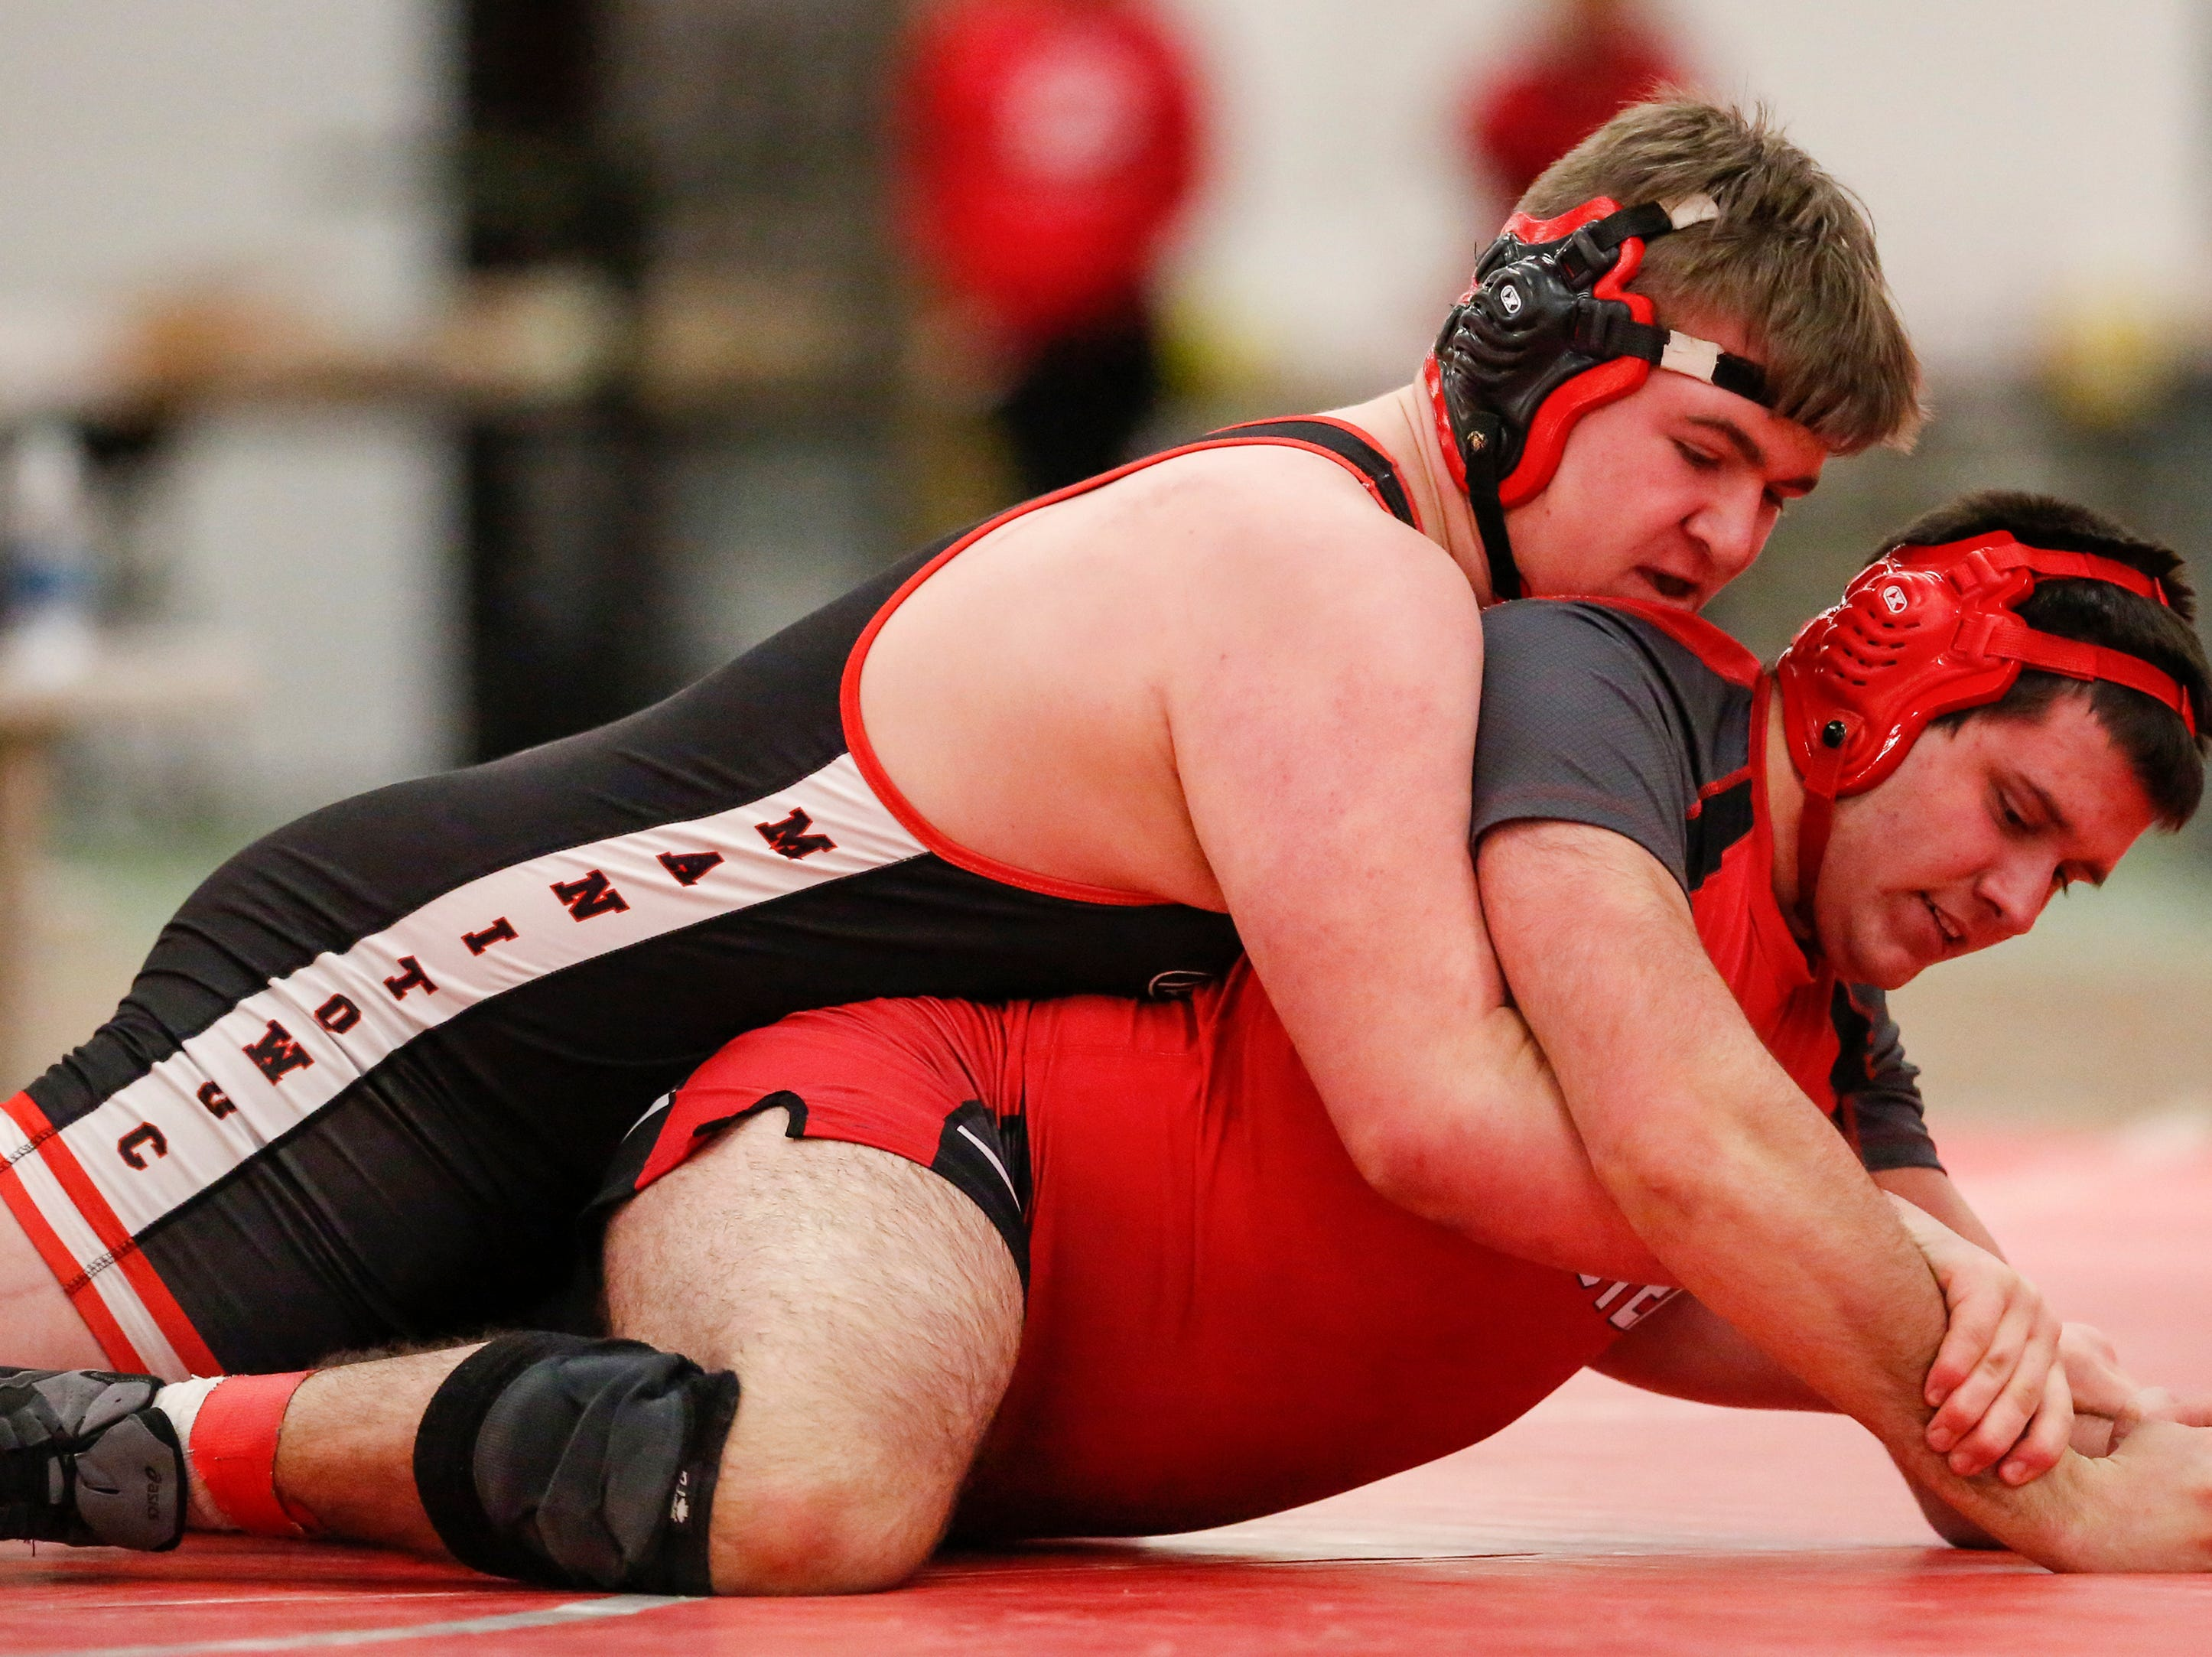 Manitowoc Lincoln's Gryffin Jones wrestles Homestead's Devin Klein in the 285 weight class during the WIAA D1 Regionals at Manitowoc Lincoln High School Saturday, February 9, 2019, in Manitowoc, Wis. Joshua Clark/USA TODAY NETWORK-Wisconsin